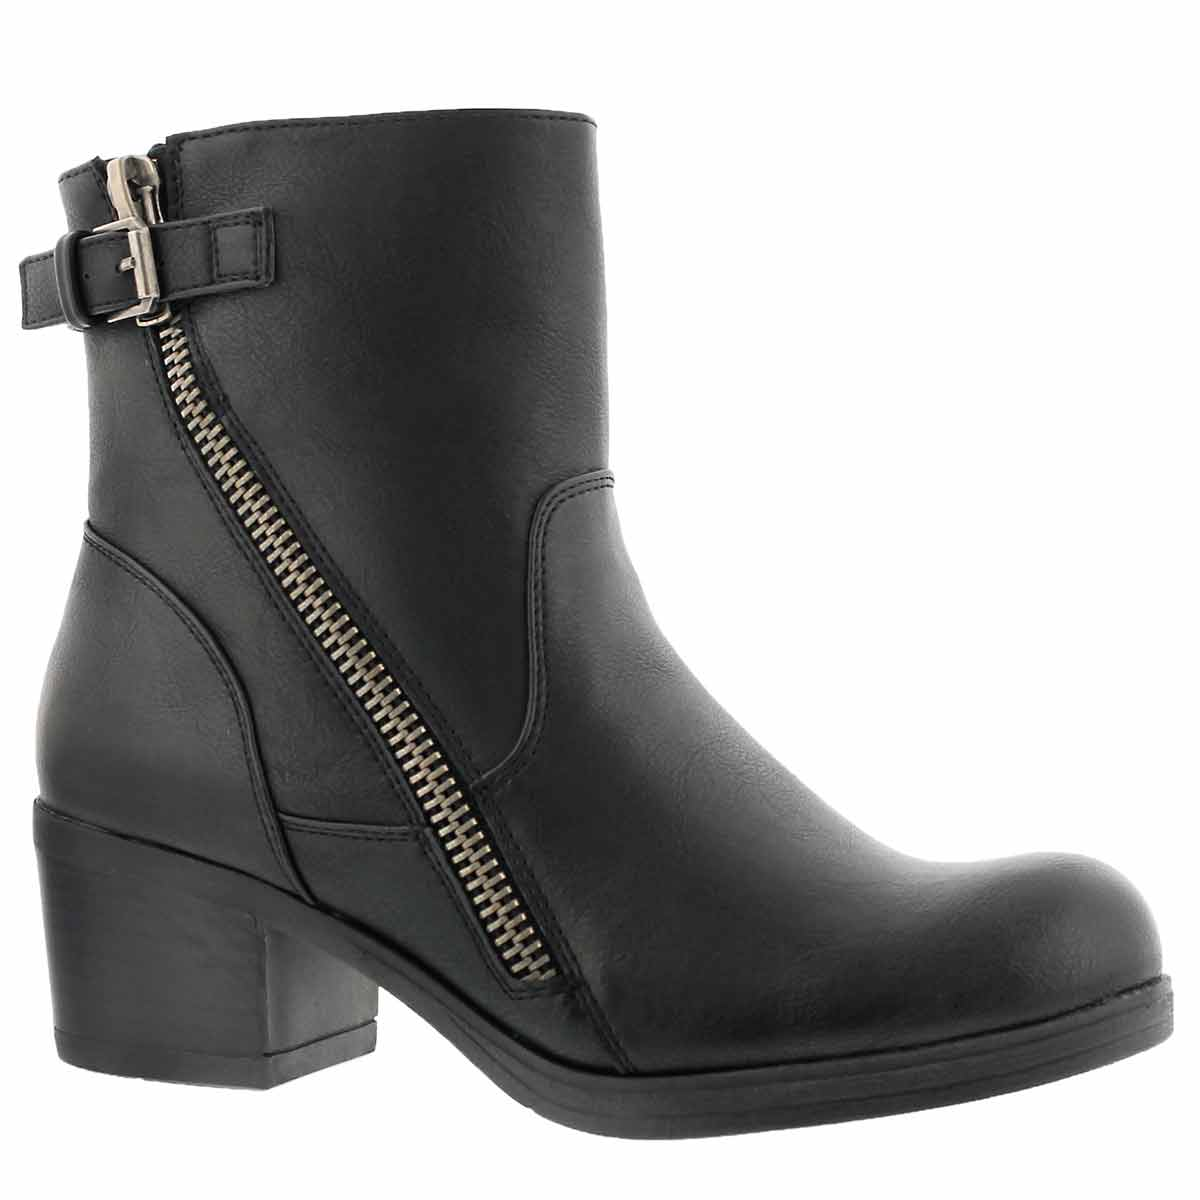 Women's BOBBI JEAN black casual ankle boots